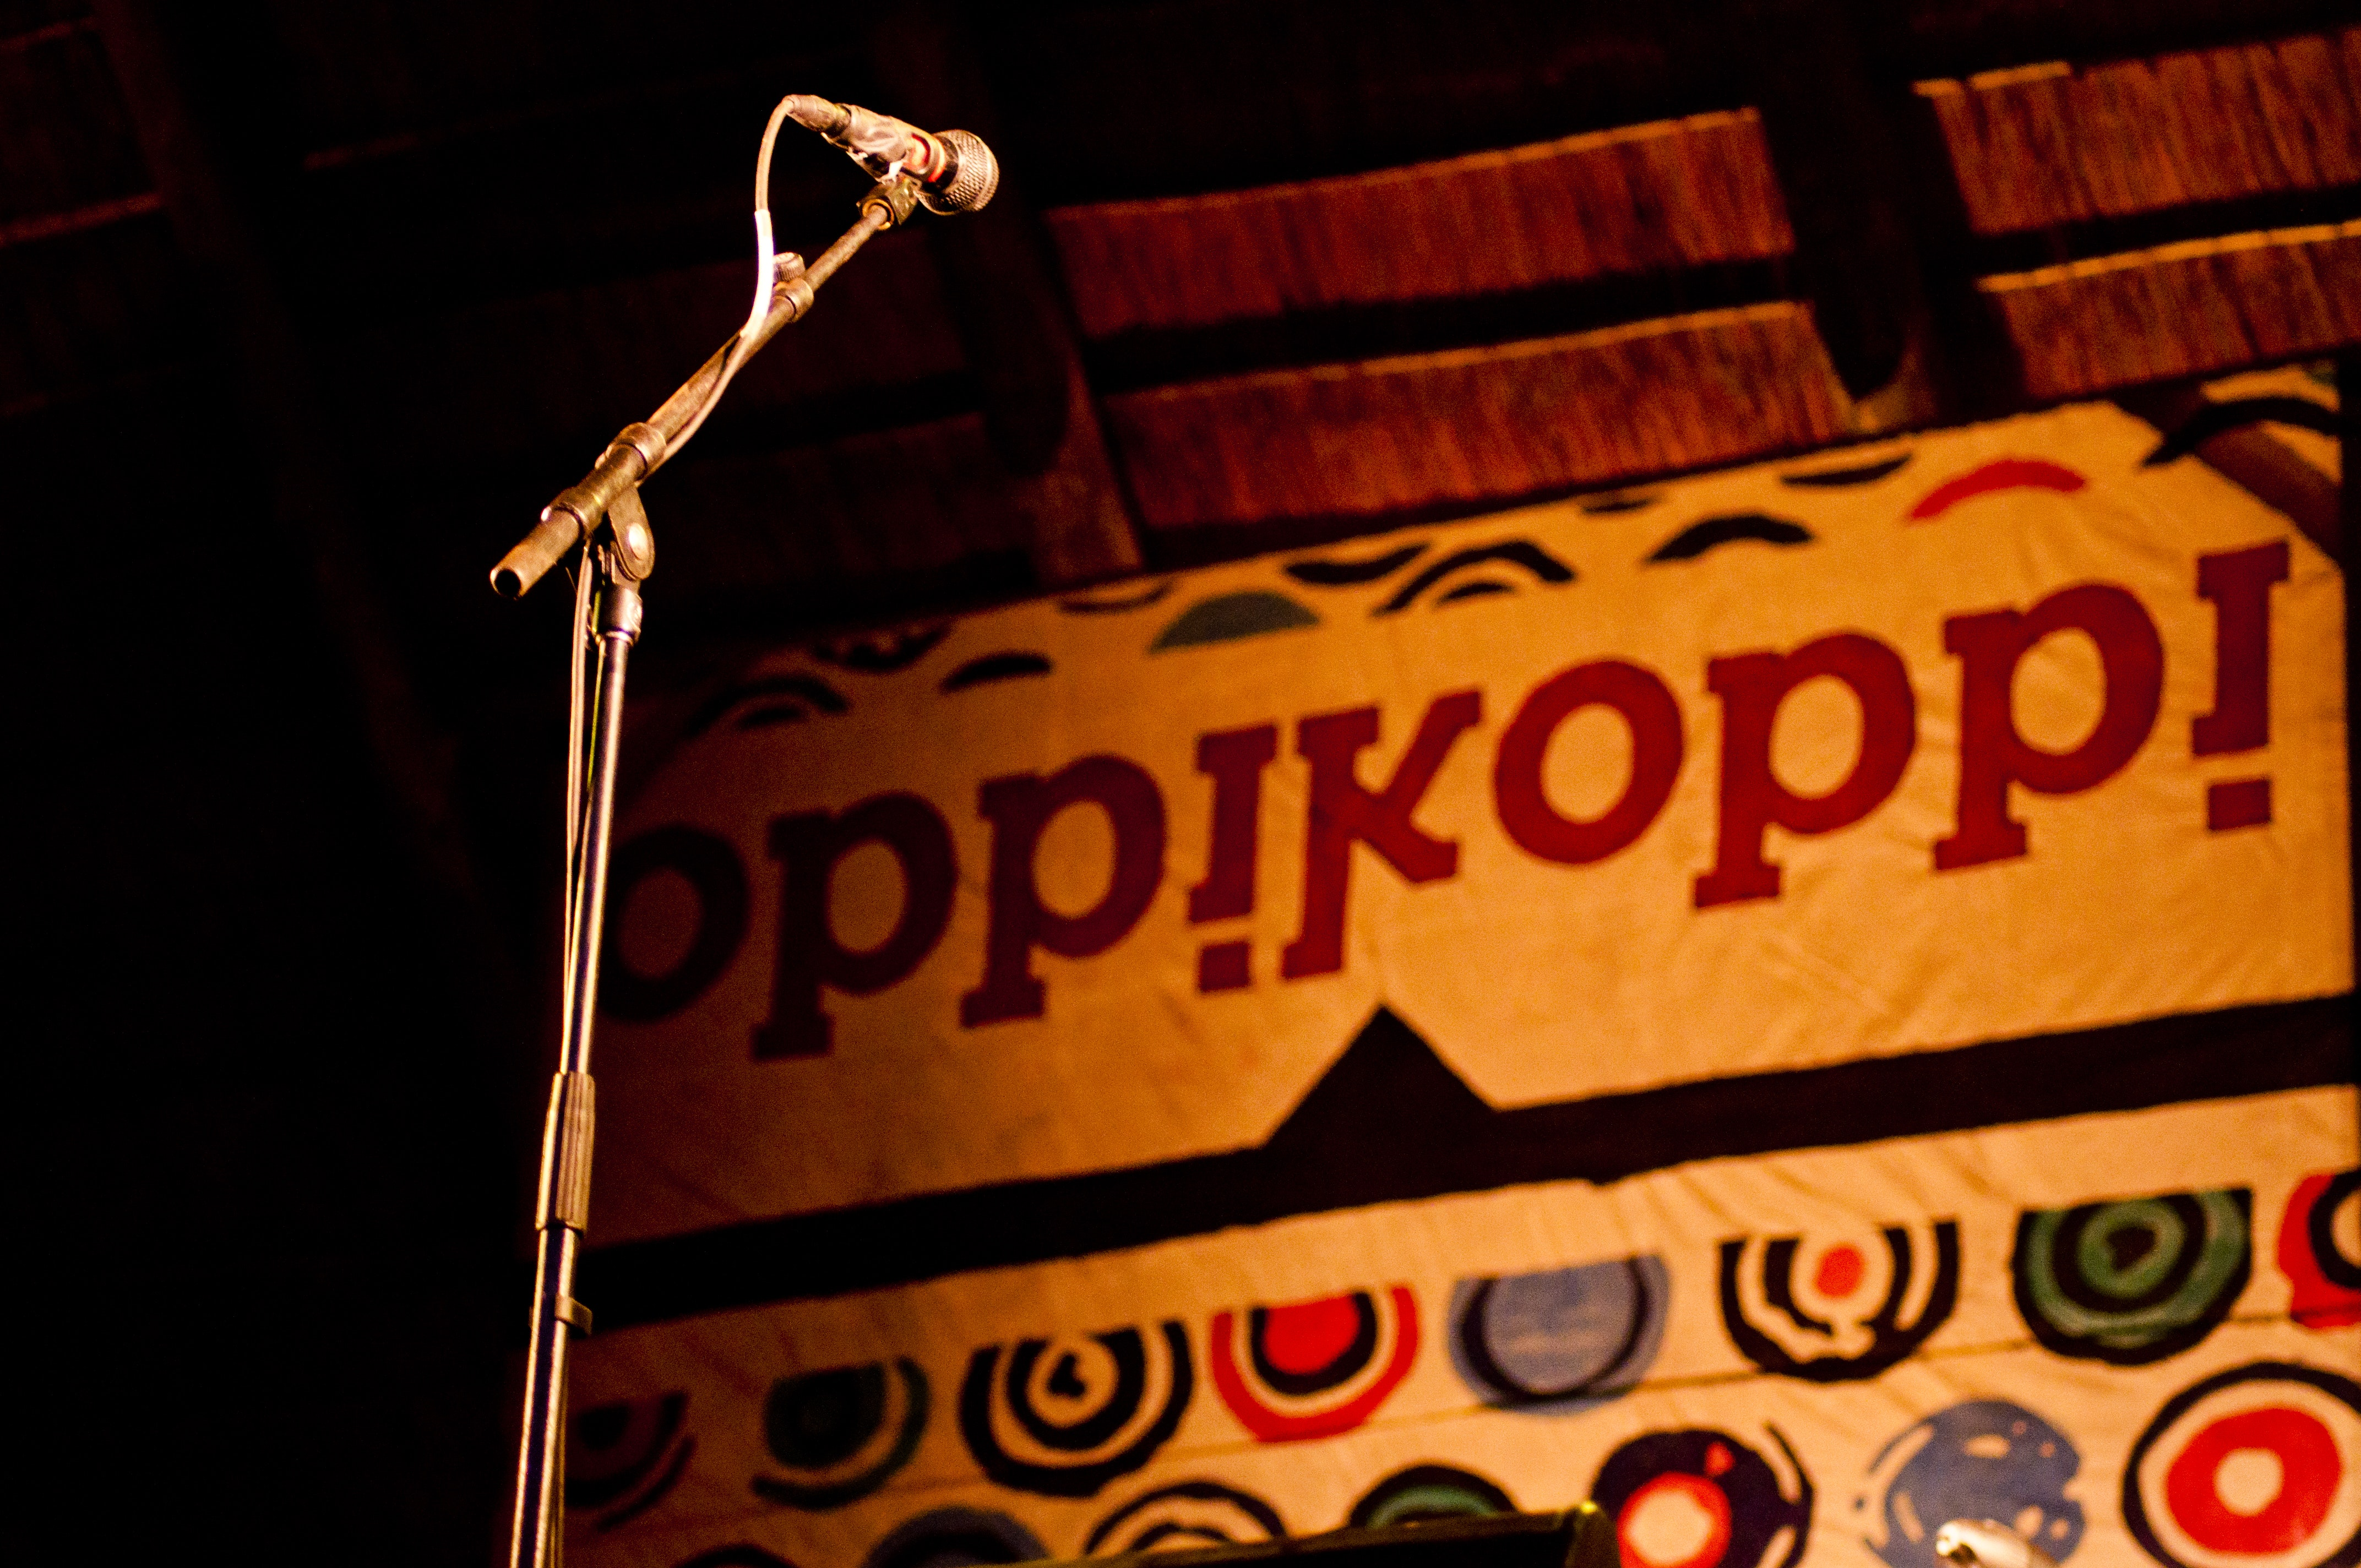 Over 21 years the Oppikoppi music festival has come to embrace South Africa's diversity